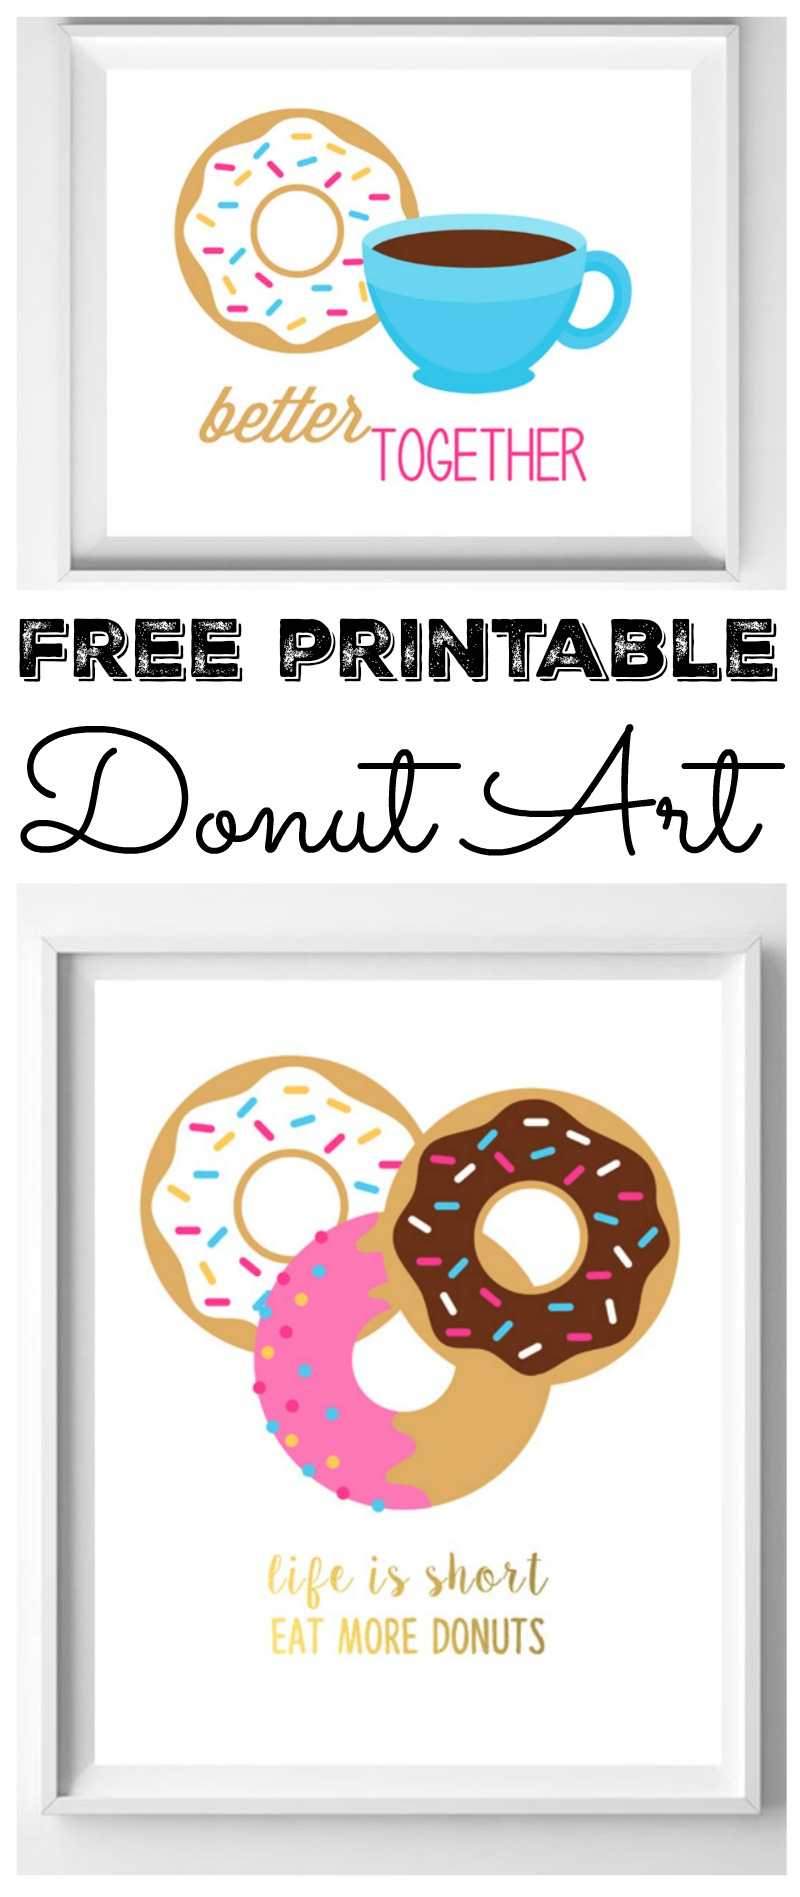 image about Donut Printable referred to as Absolutely free Printable Artwork (with Donuts!) - The Region Stylish Cottage